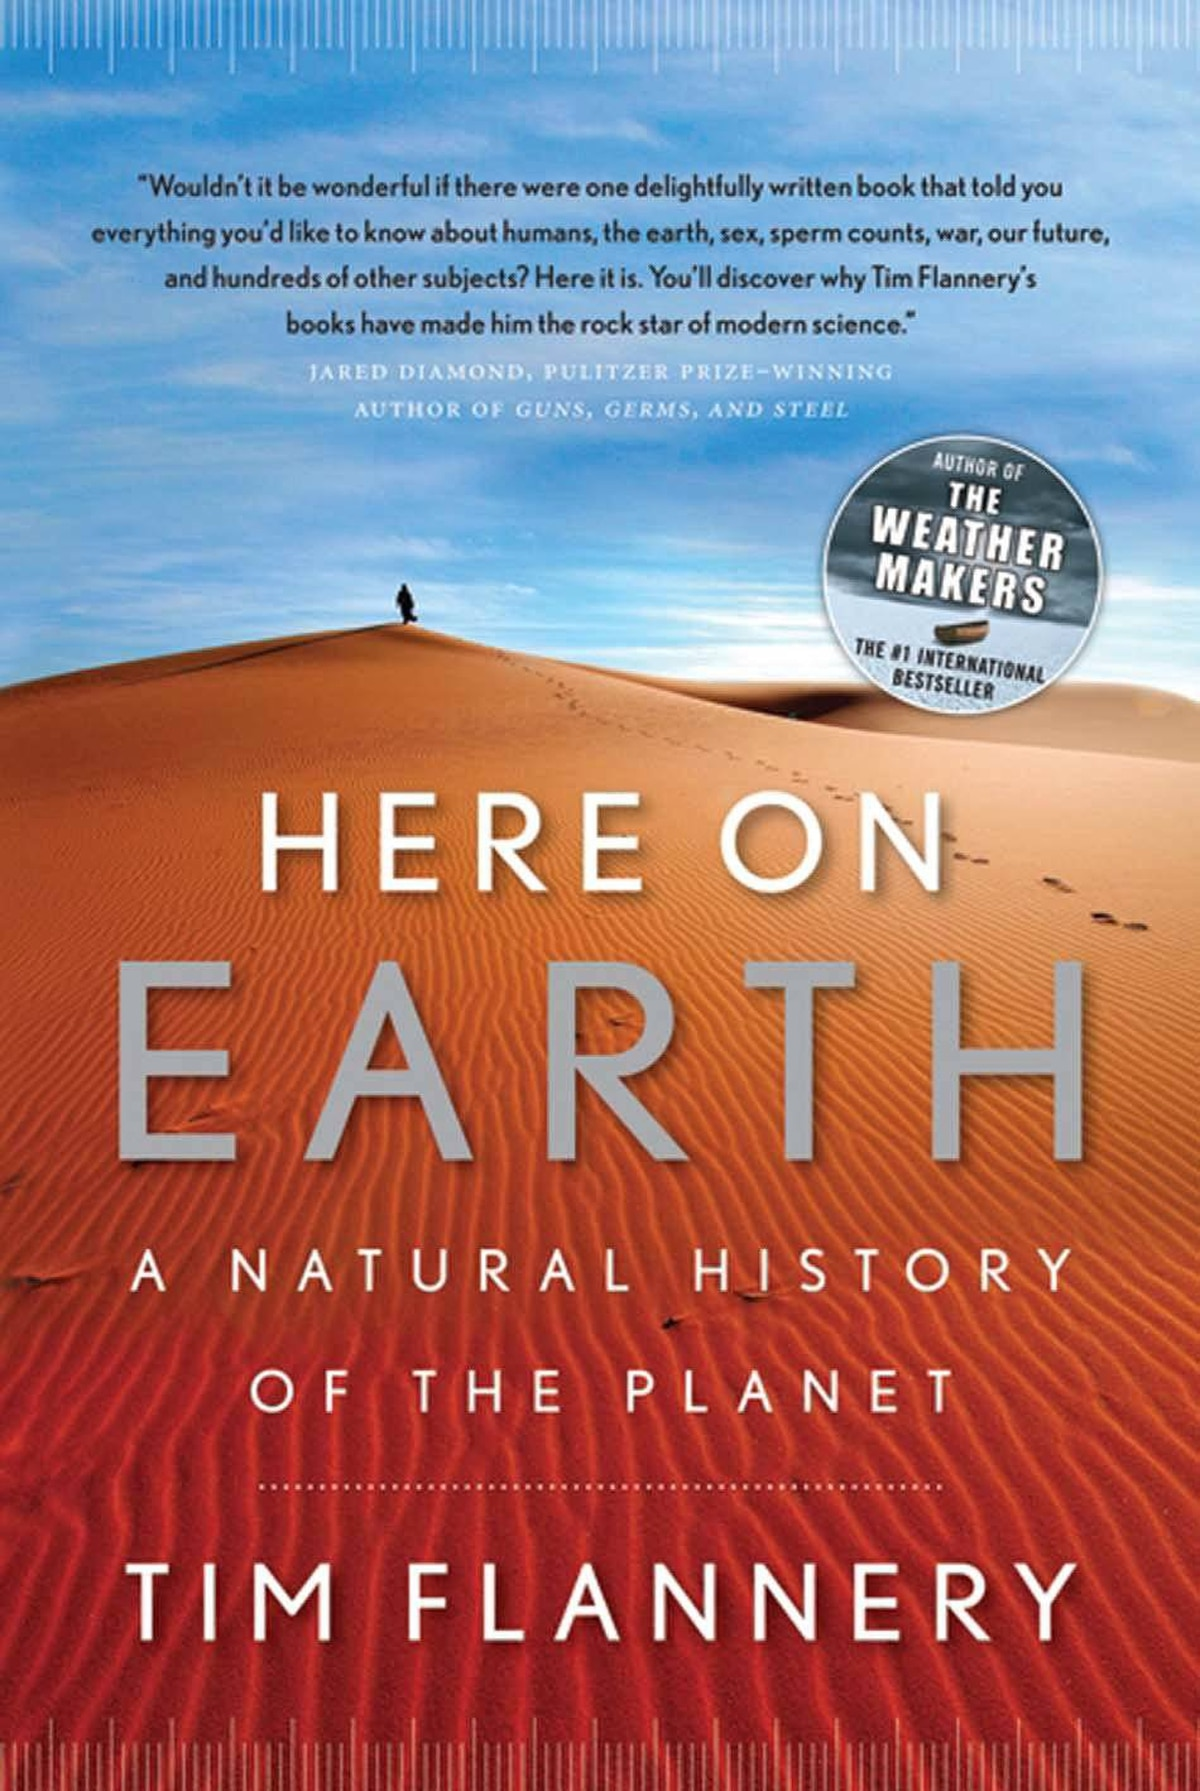 HERE ON EARTH A Natural History of the Planet By Tim Flannery (HarperCollins) This is a hinge moment for civilization. Australian biologist Flannery responds by explaining the nature of that hinge and offering hope for the future. Just as his The Weather Makers appeared at the right time to explain climate change, Here on Earth arrives at the perfect moment, a bravura synthesis spanning scientific disciplines and billions of years. – Alanna Mitchell